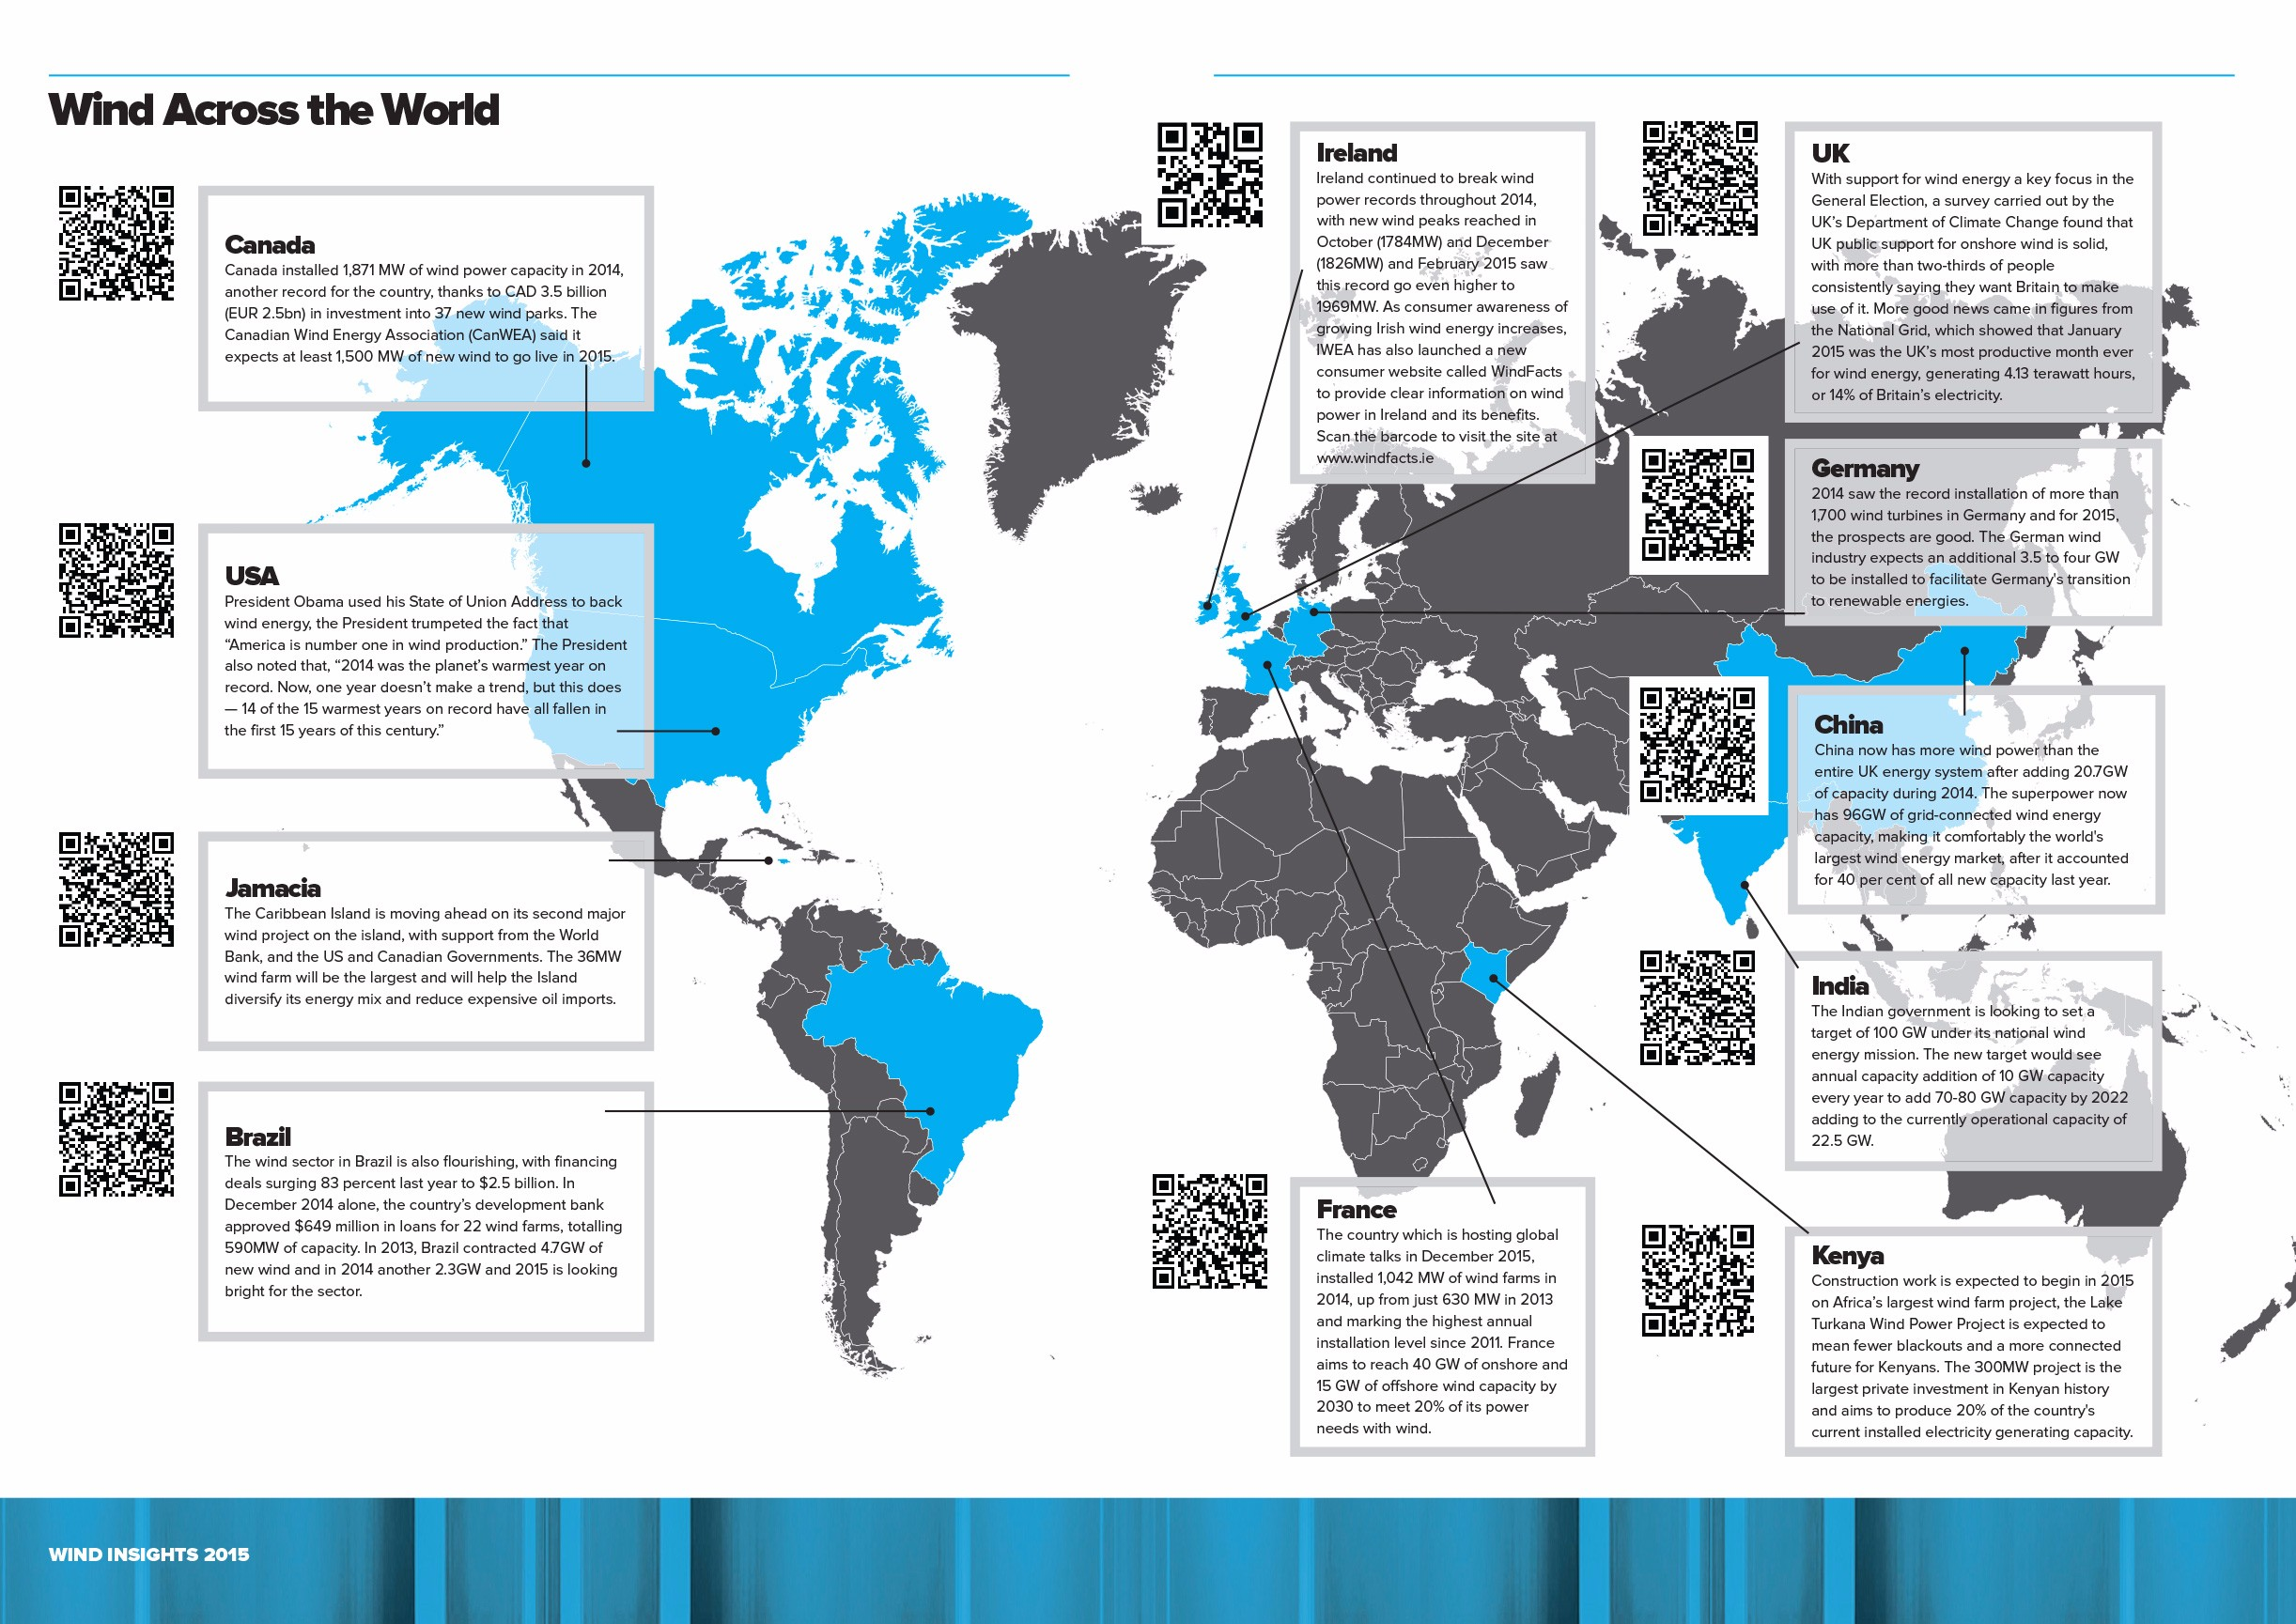 A snapshot of stories on wind energy from around the world.